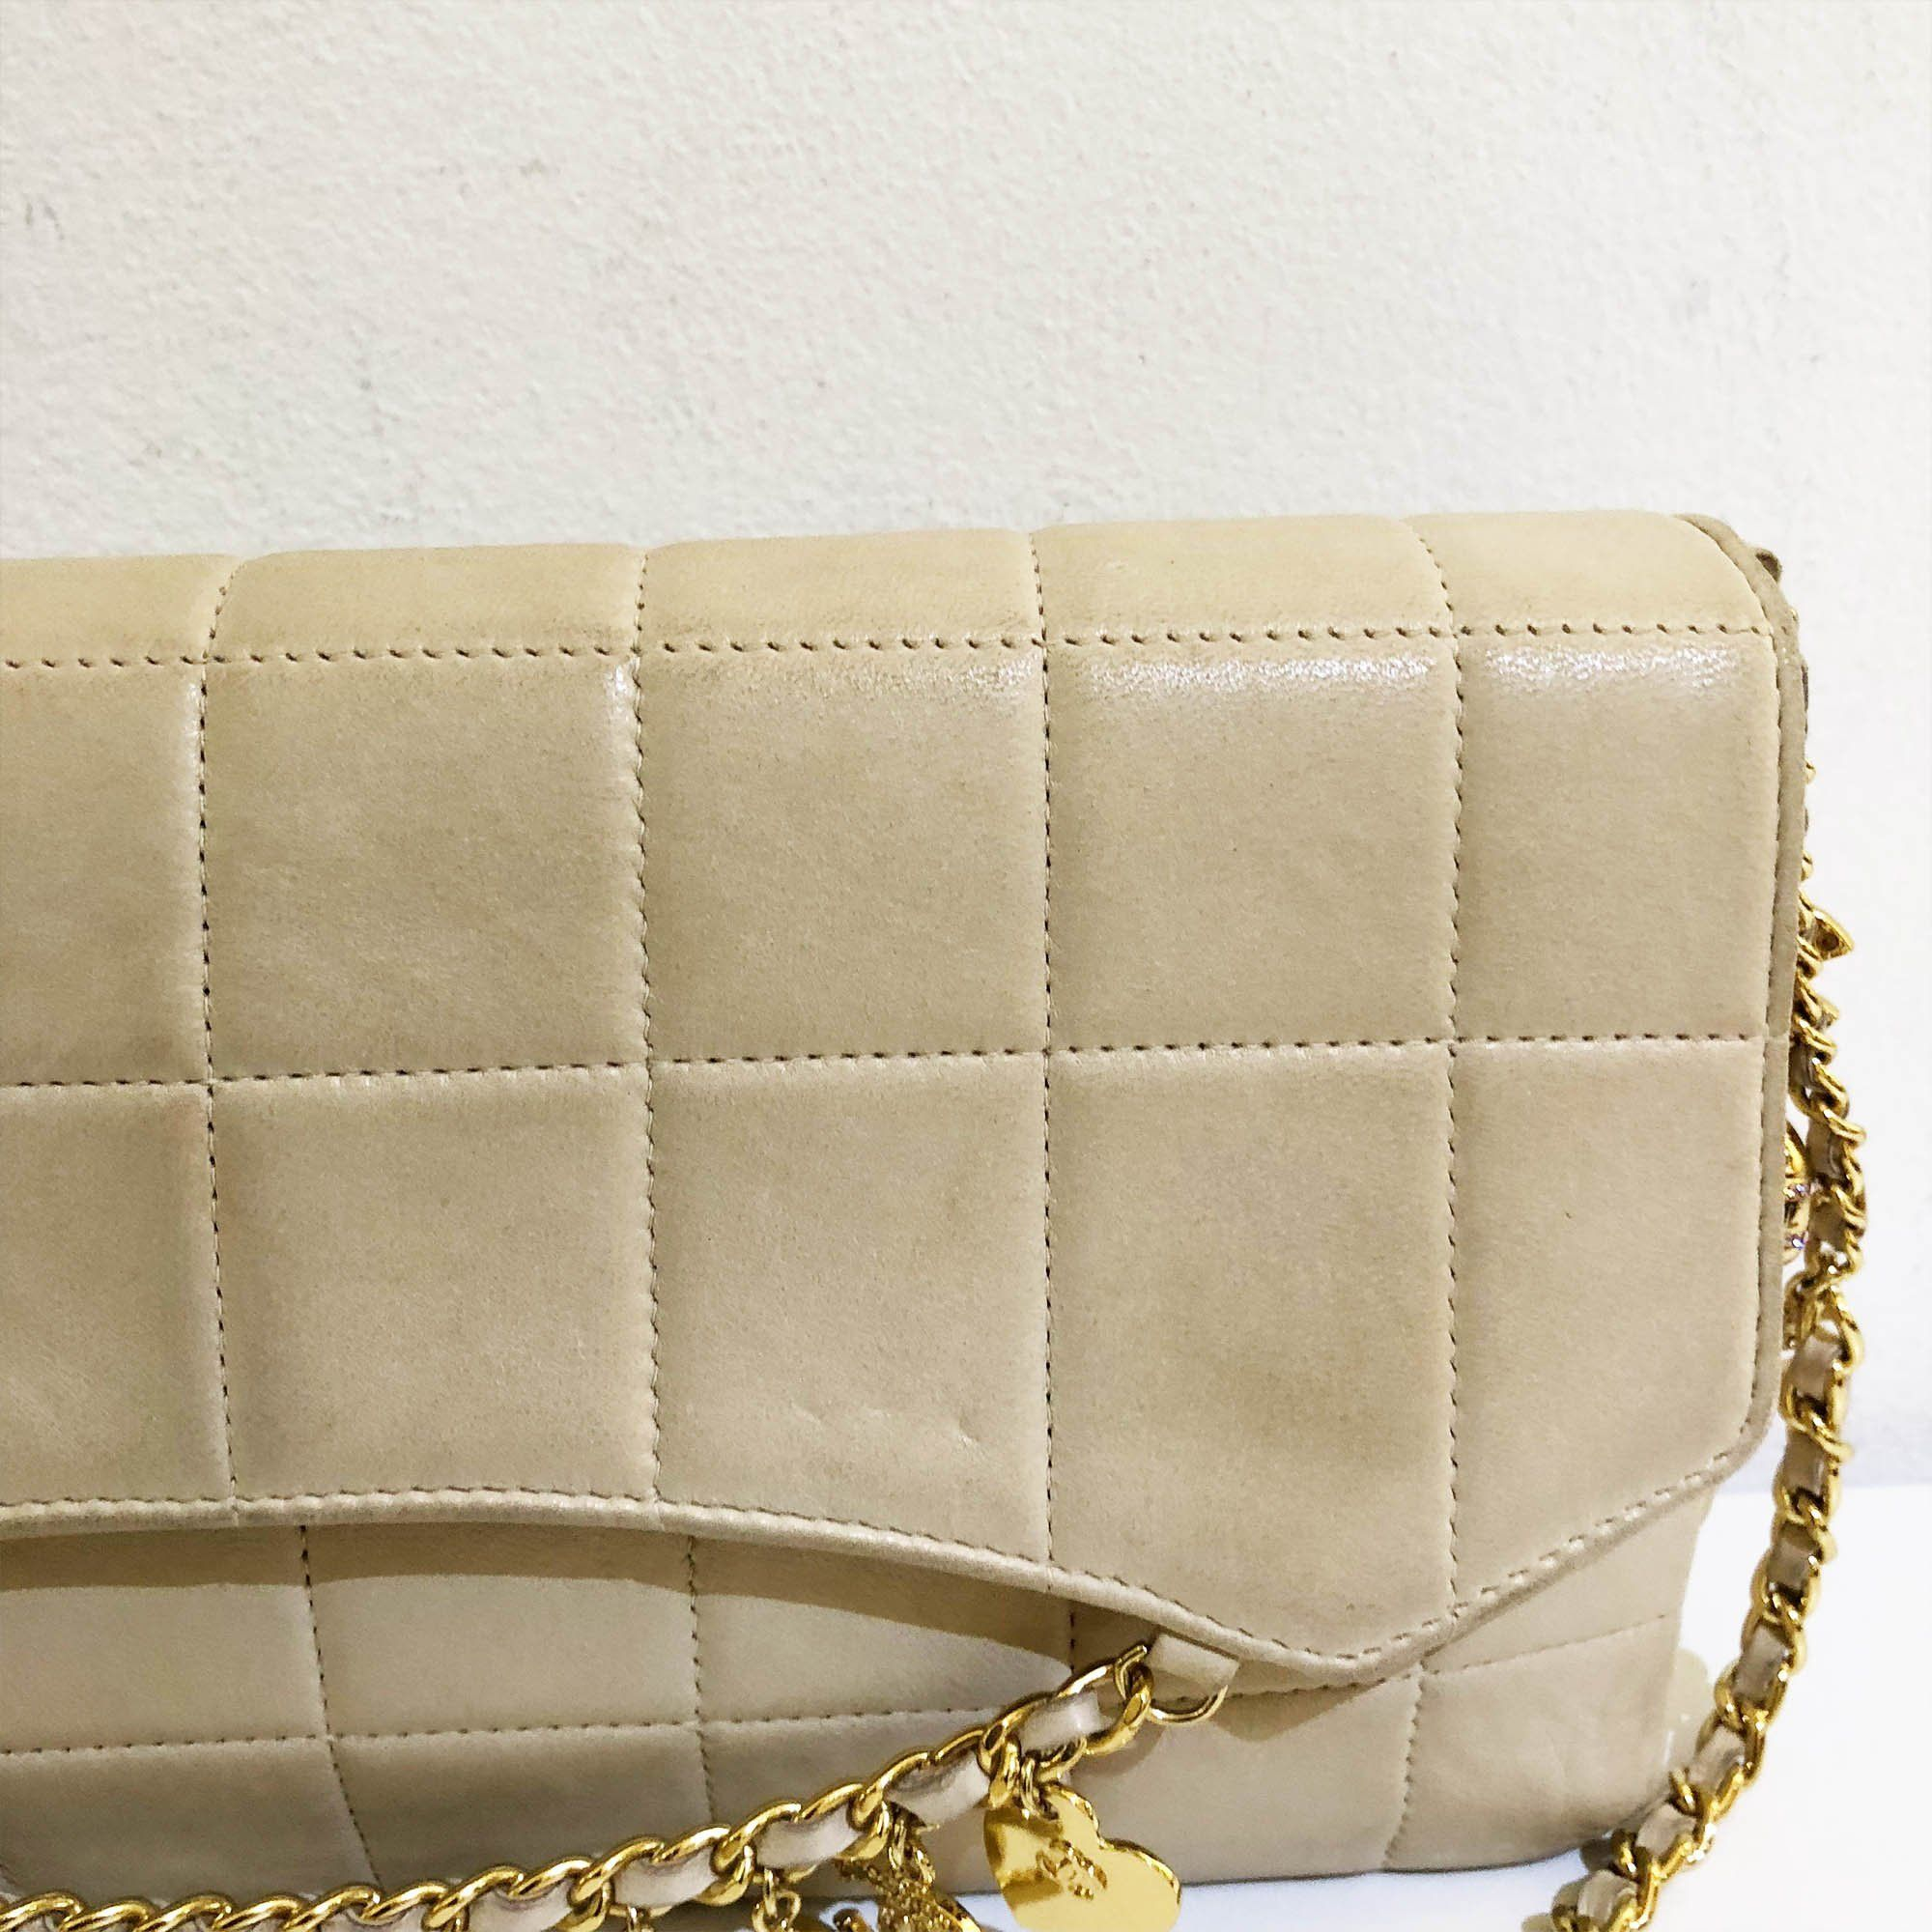 Chanel Chocolate Bar Bag with Crystal Charms and Chain Bag